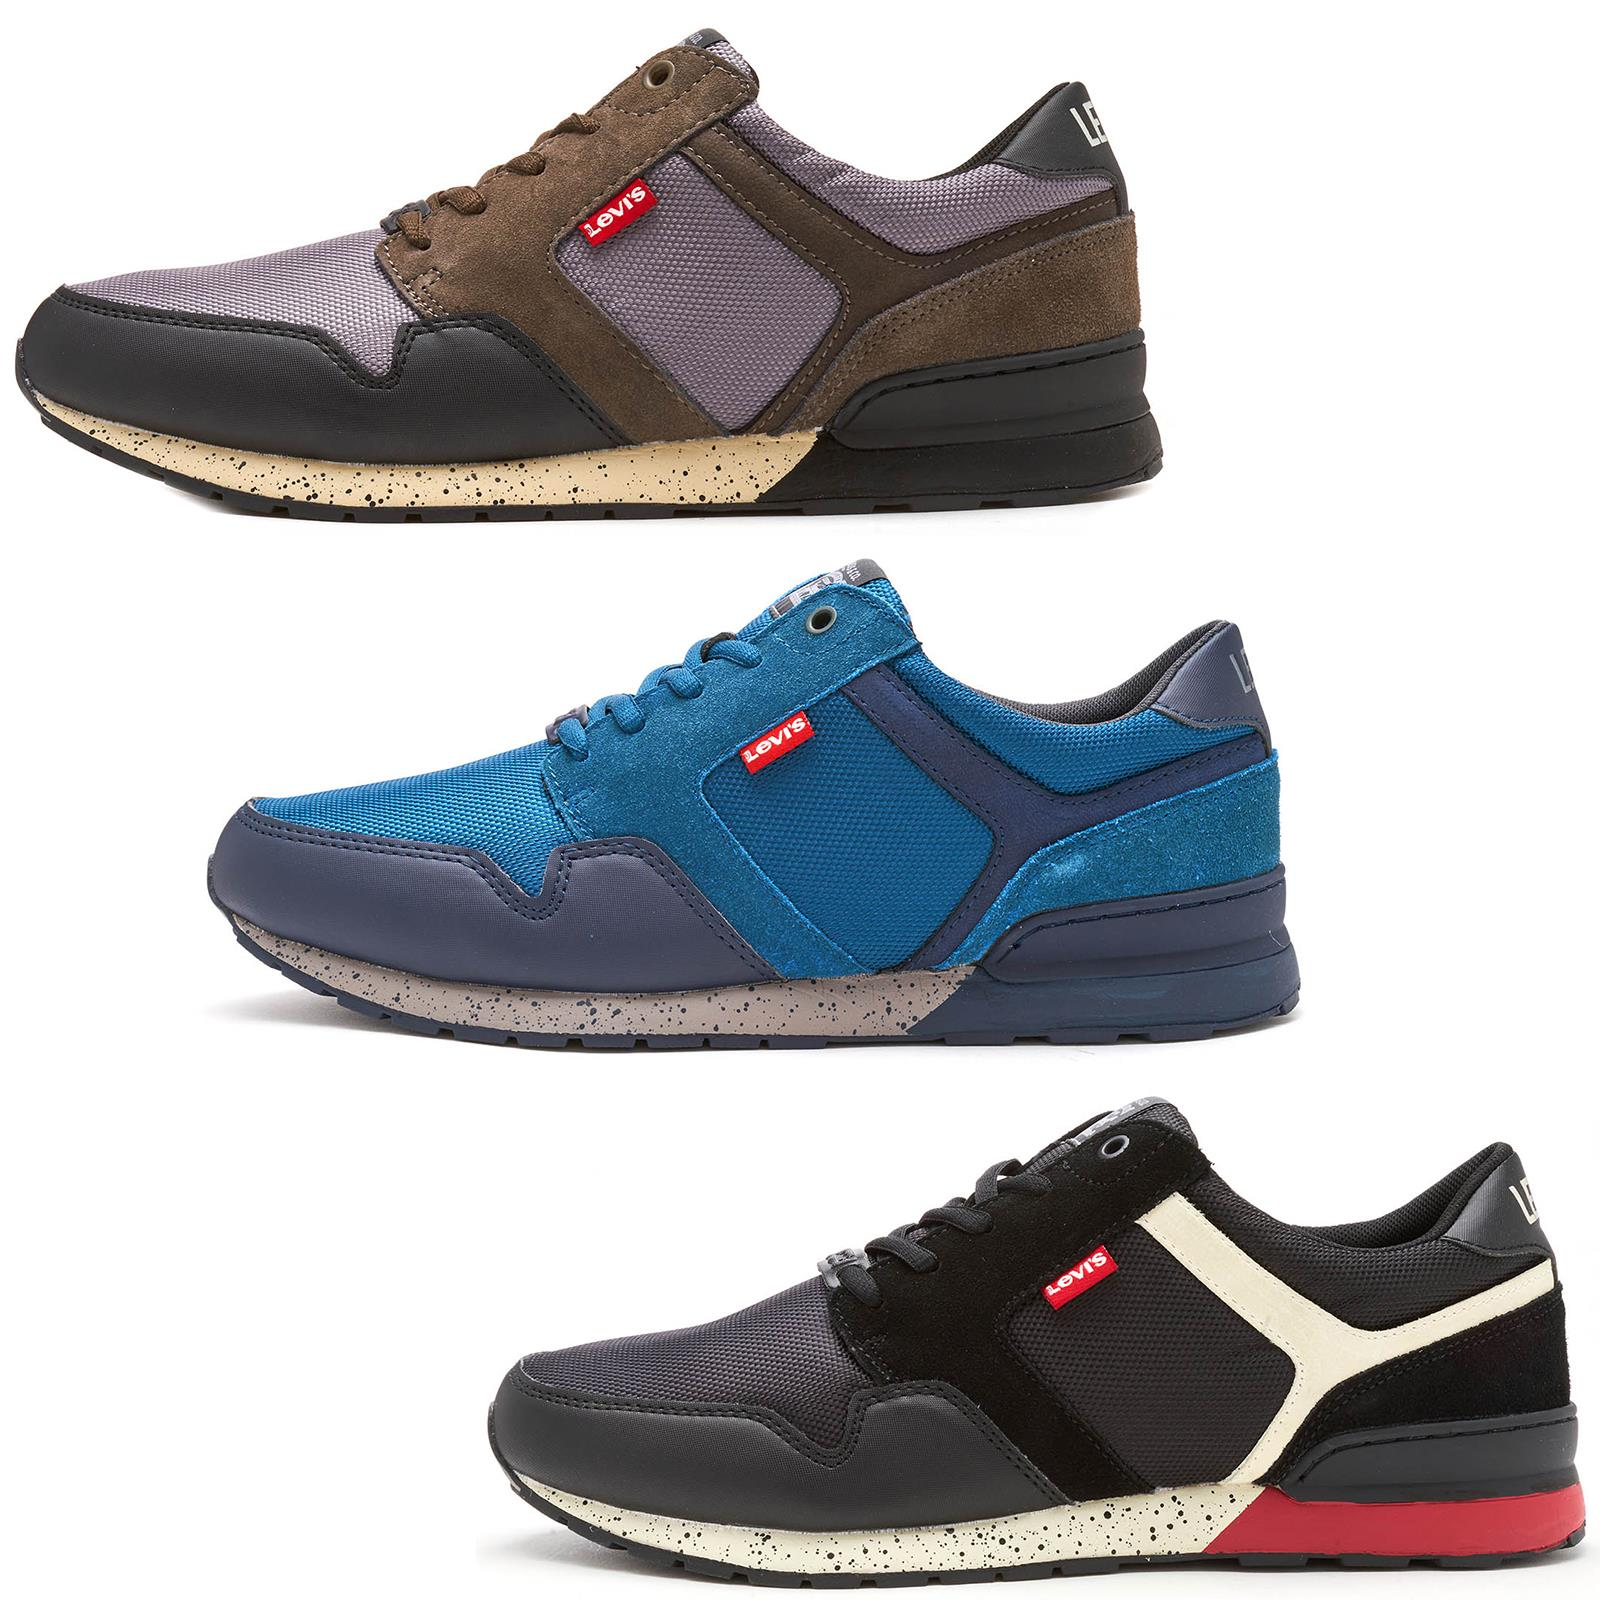 Levis NY Runner II Red Tab Trainers in